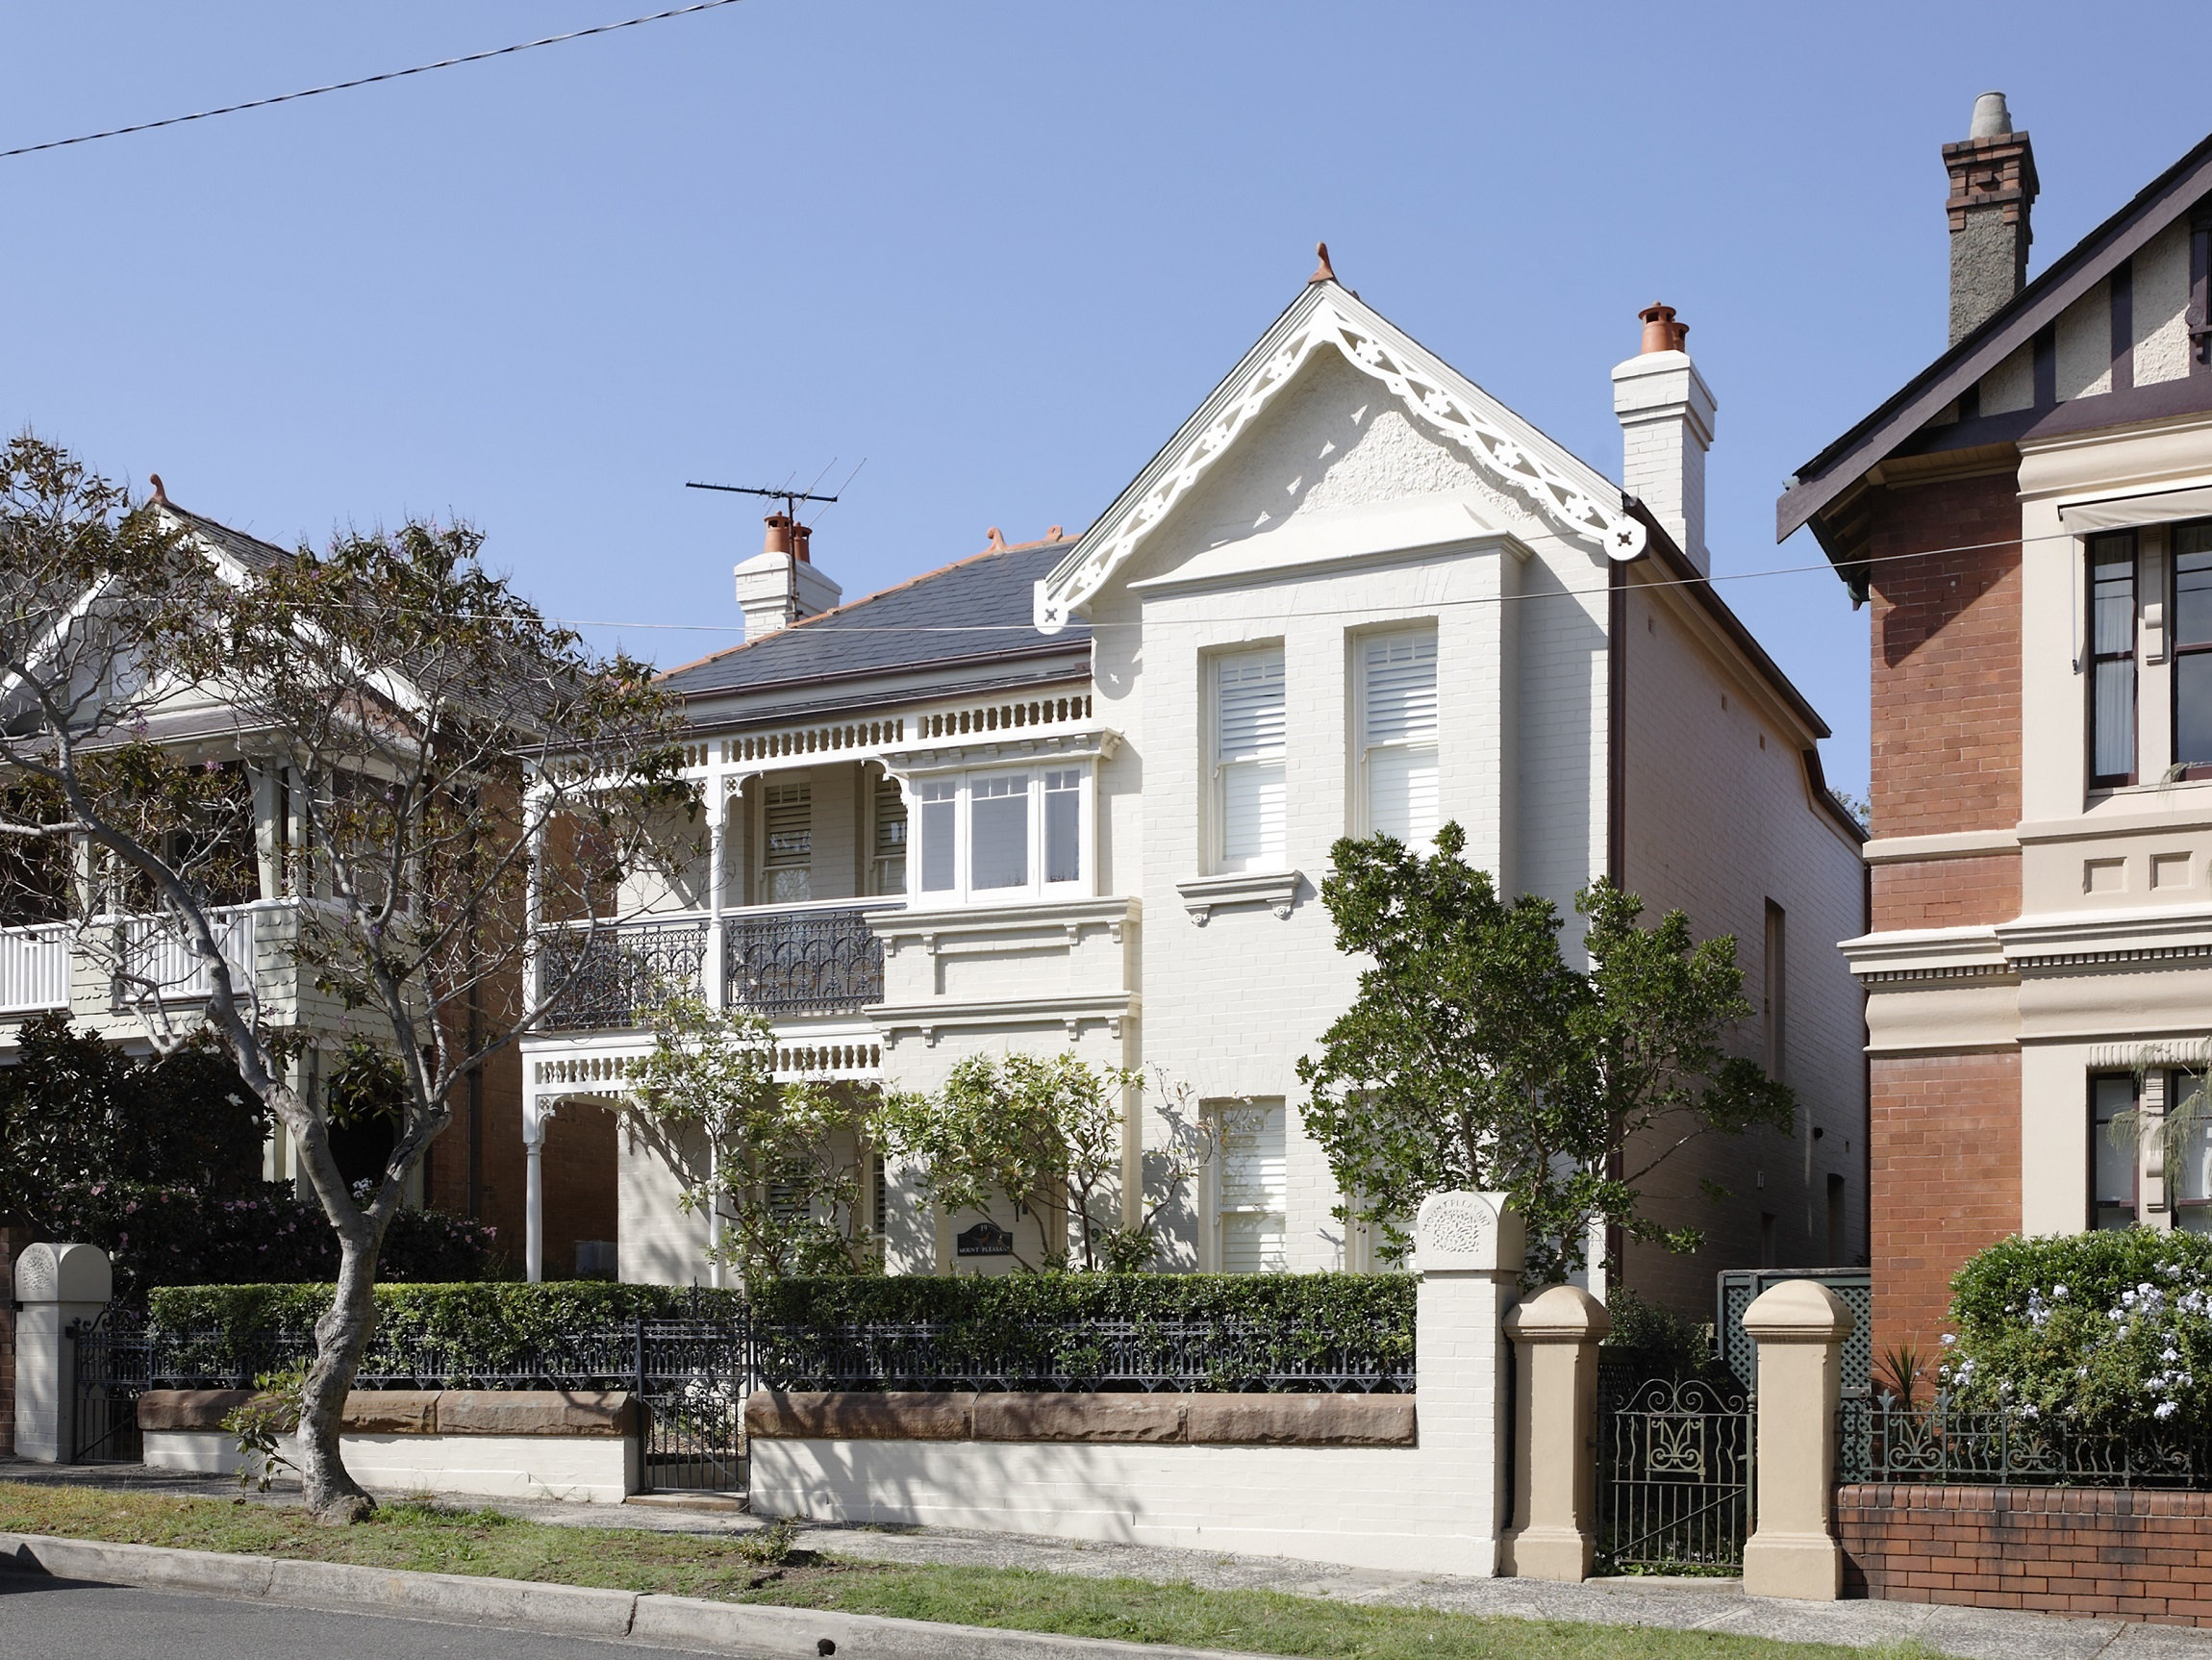 Sydney-Architecture-Townhouse-Heritage-Michael-Bell-Architects(1)